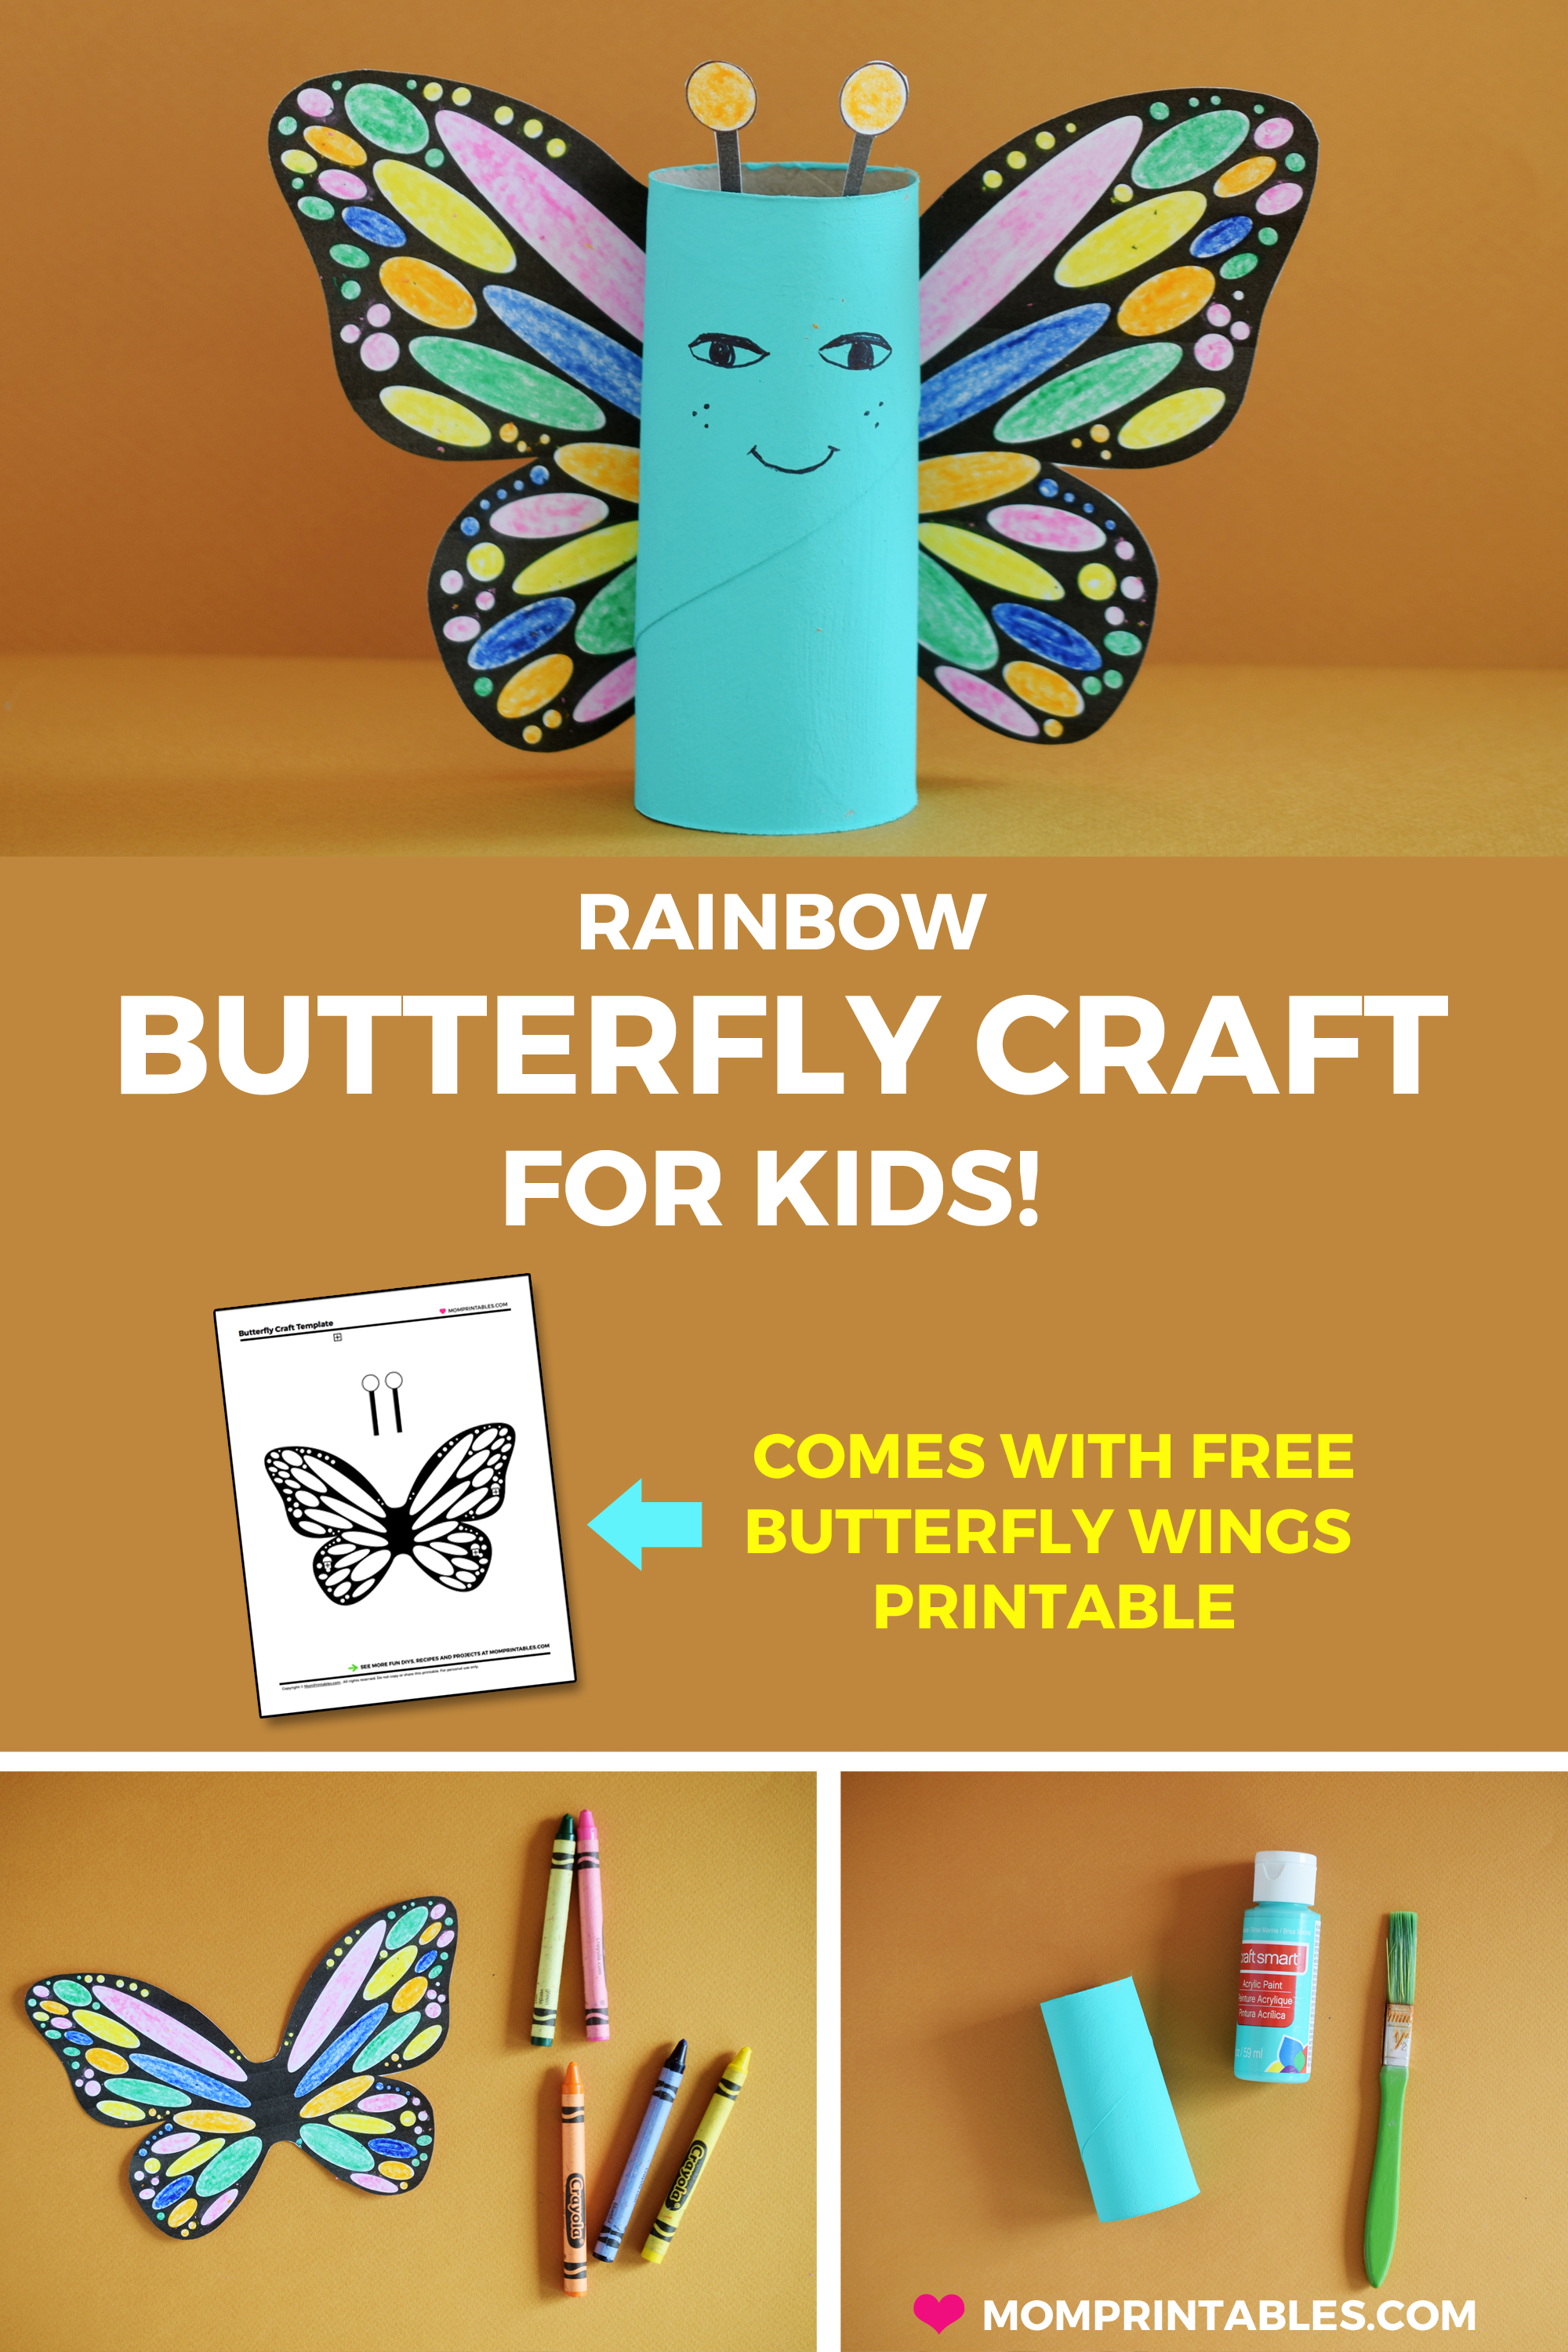 Rainbow Butterfly Paper Roll Craft for kids | preschool | tutorial | kindergarten | easy craft | project | tutorial |  monarch | to make | ideas | free printable | toddlers | spring craft | toilet paper roll craft #butterflycraft #springcraft #kidscraft #paperrollcraft